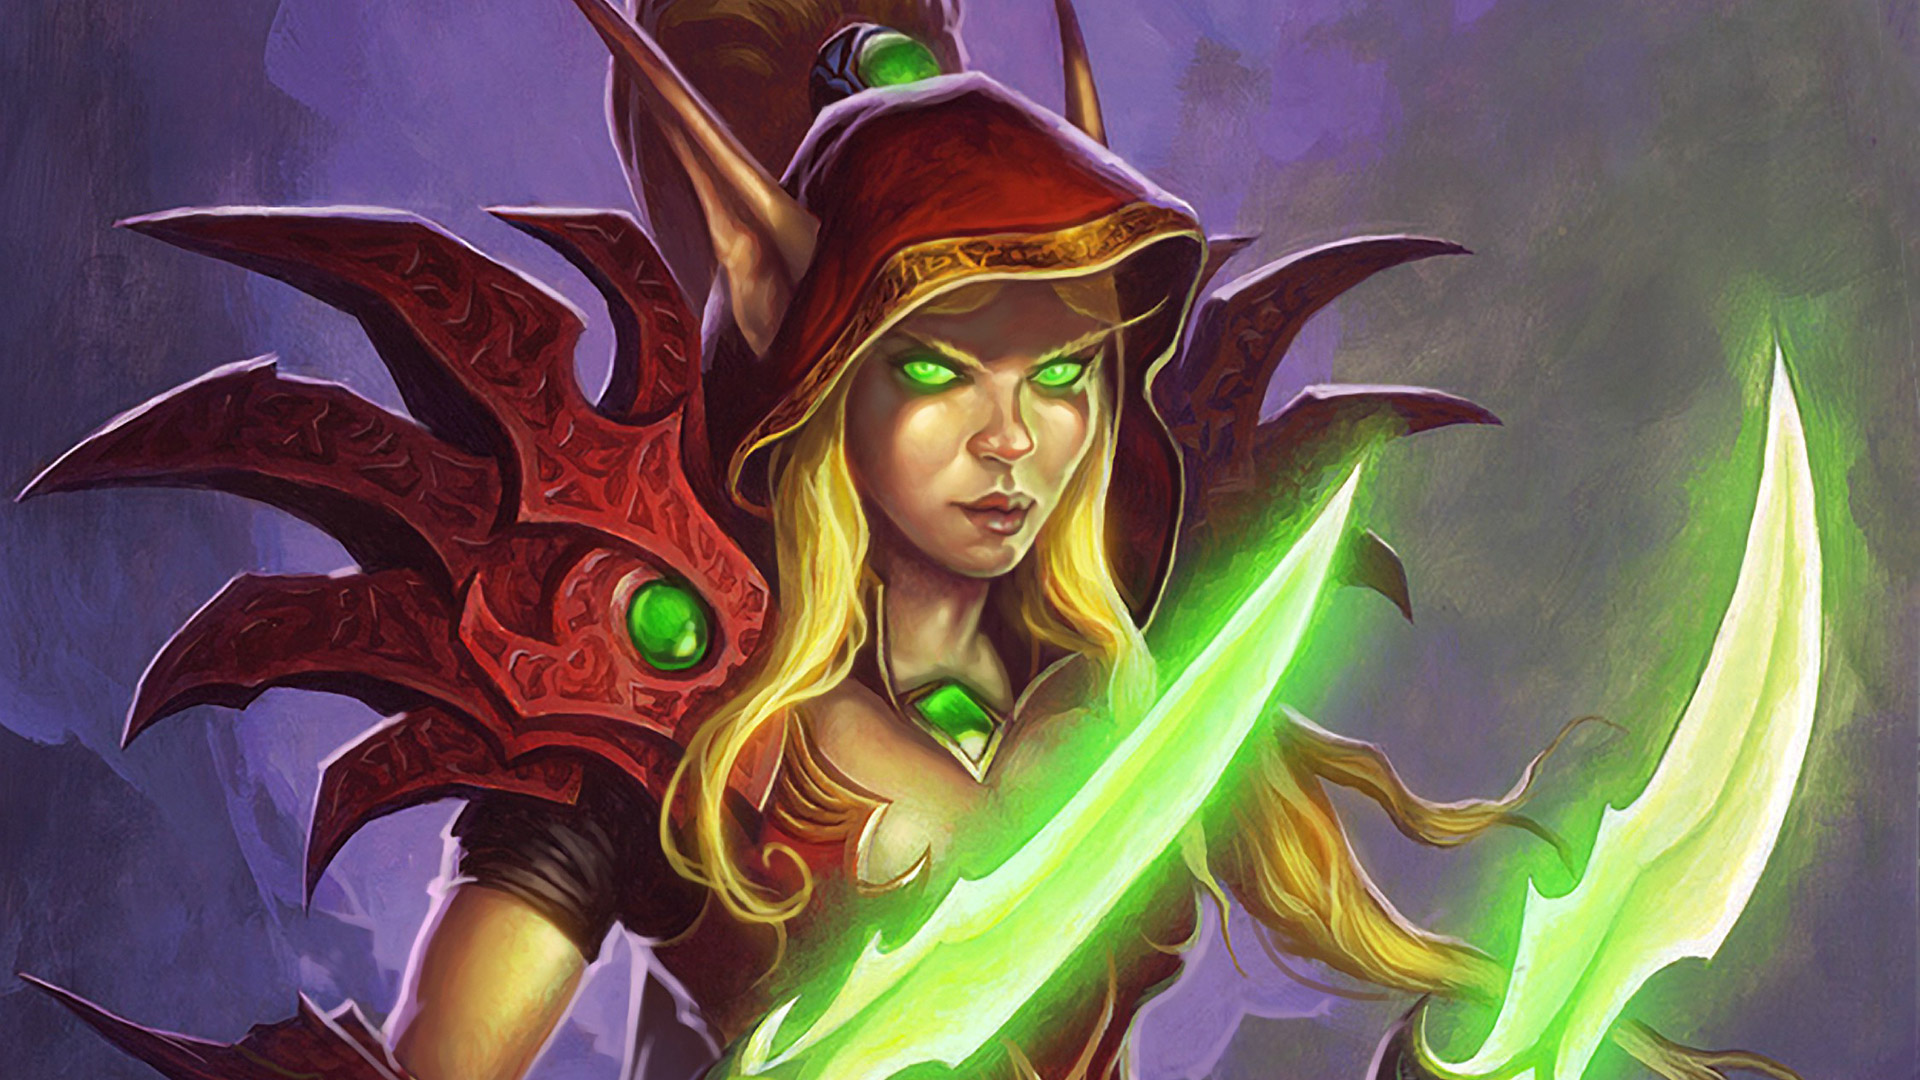 Free Hearthstone: Heroes of Warcraft Wallpaper in 1920x1080